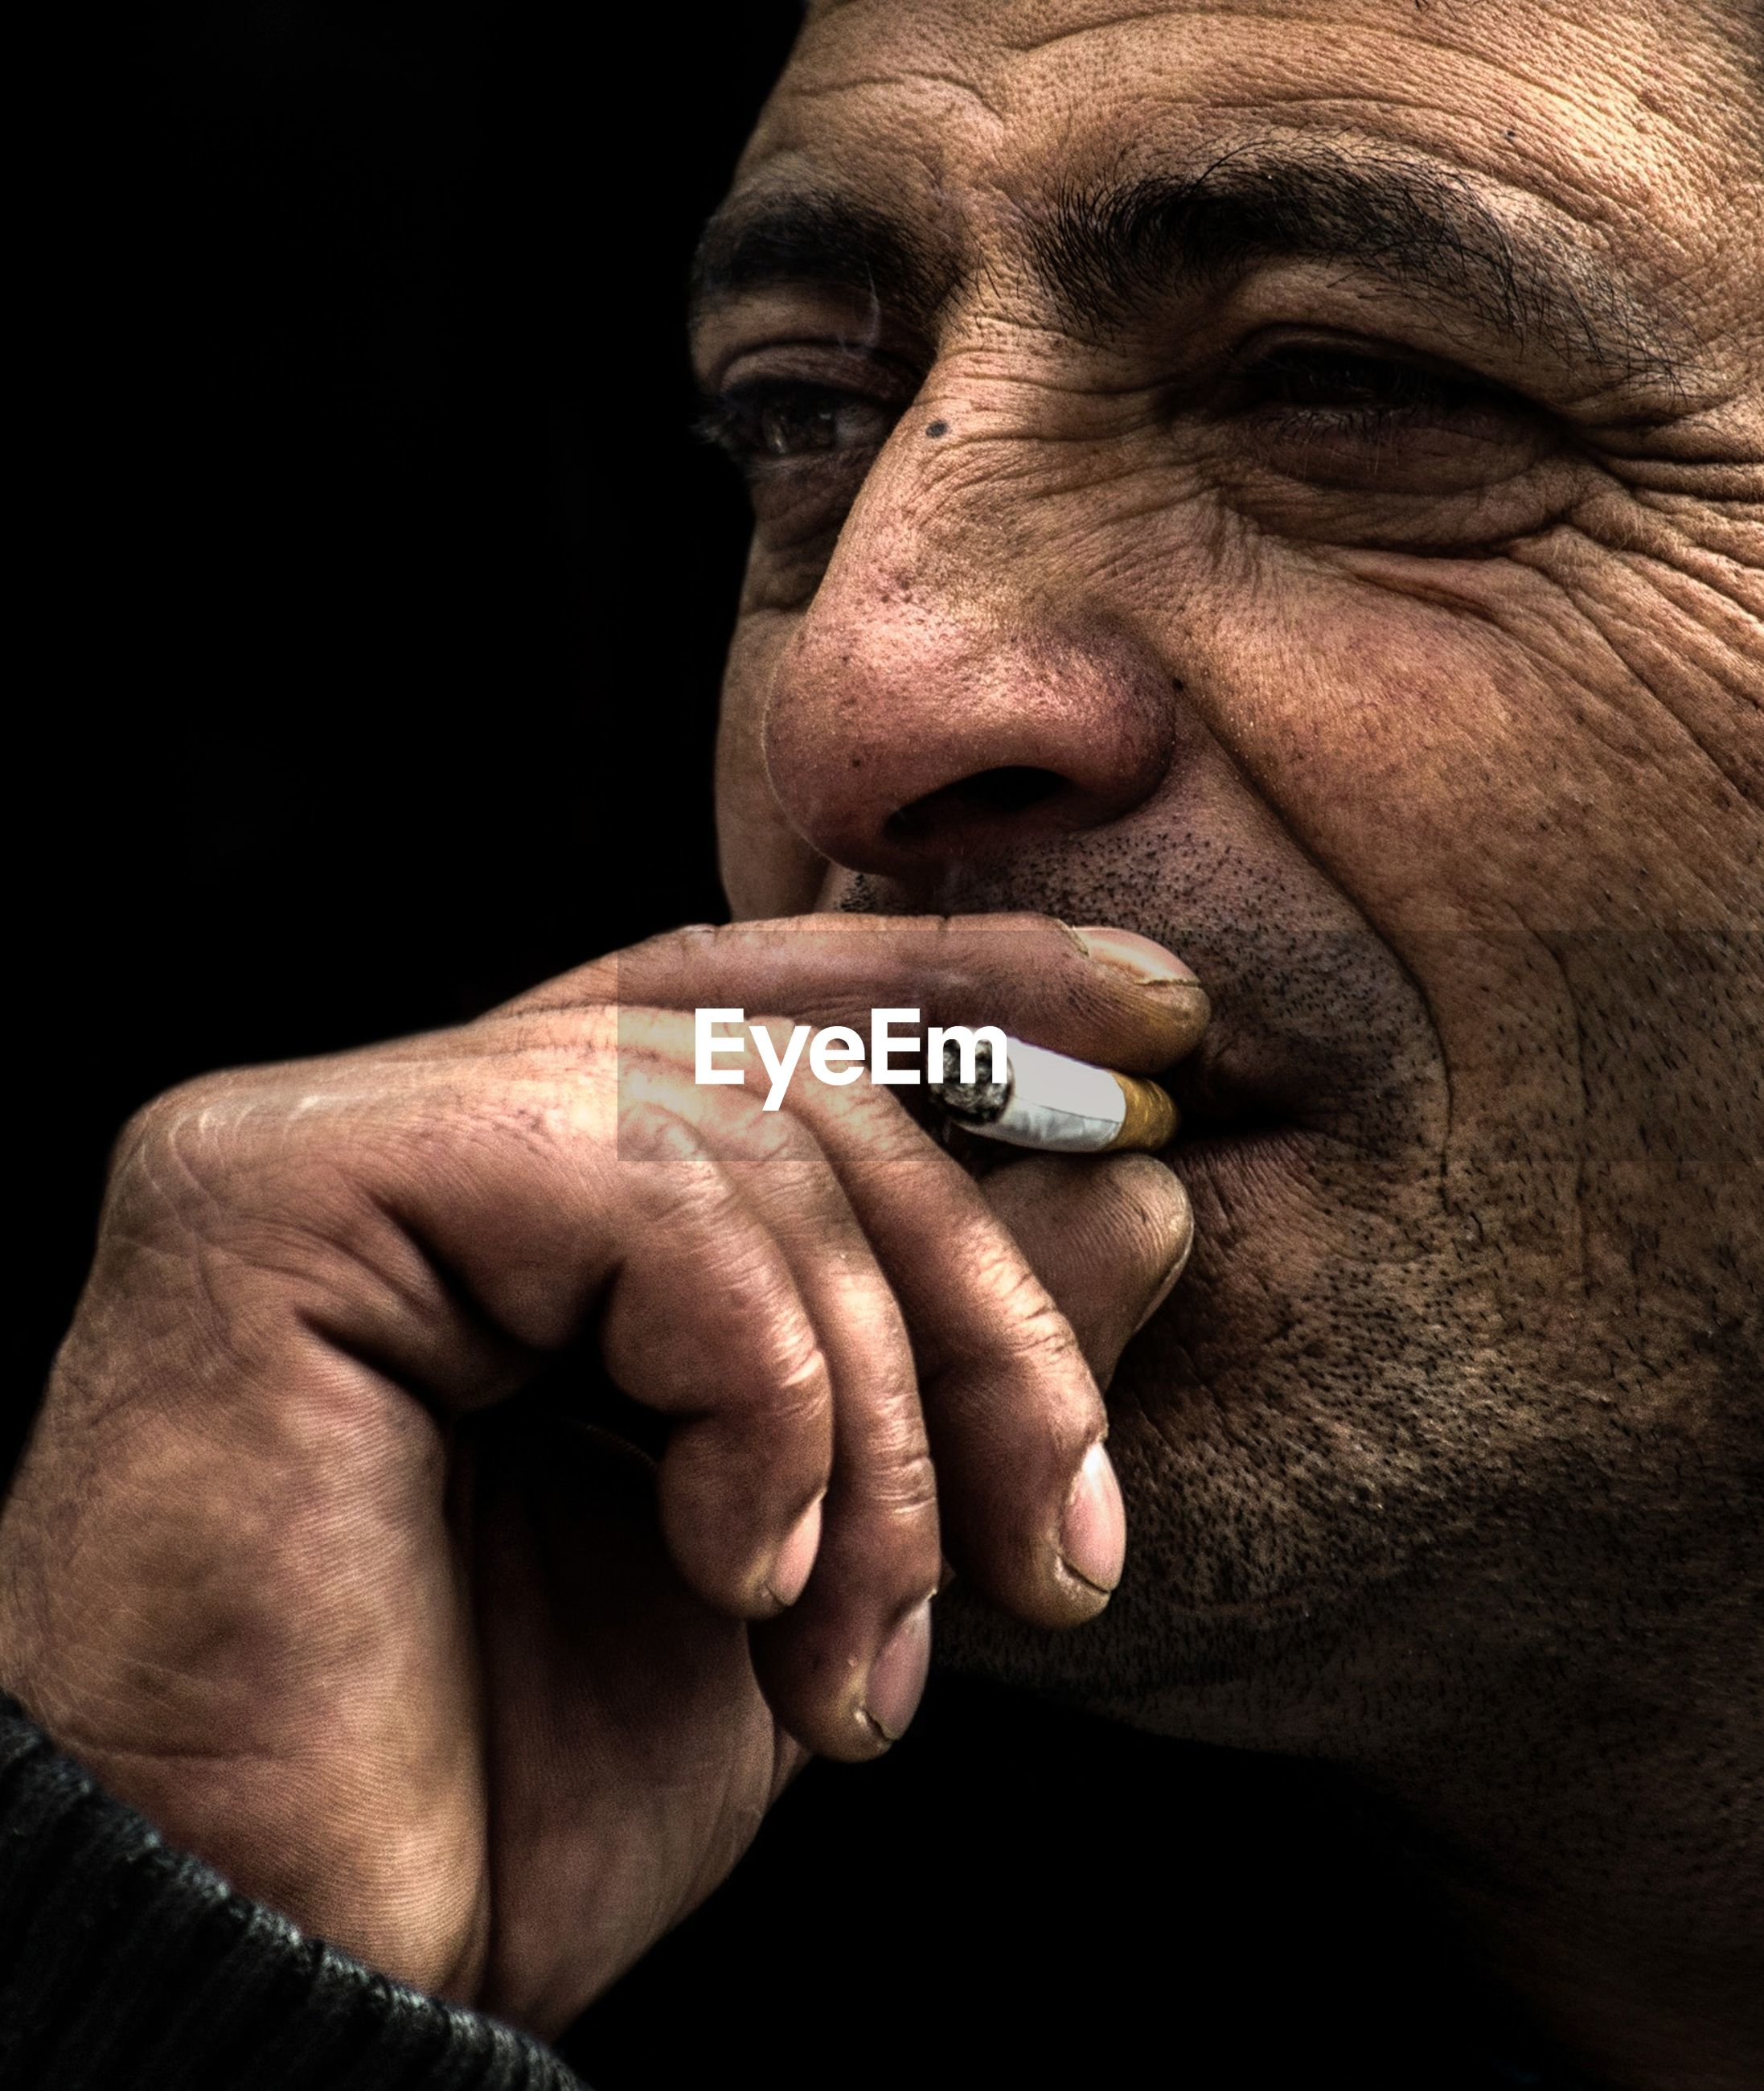 one person, men, indoors, black background, adult, studio shot, tobacco product, close-up, looking away, smoking issues, portrait, social issues, males, mid adult, headshot, cigarette, communication, mature men